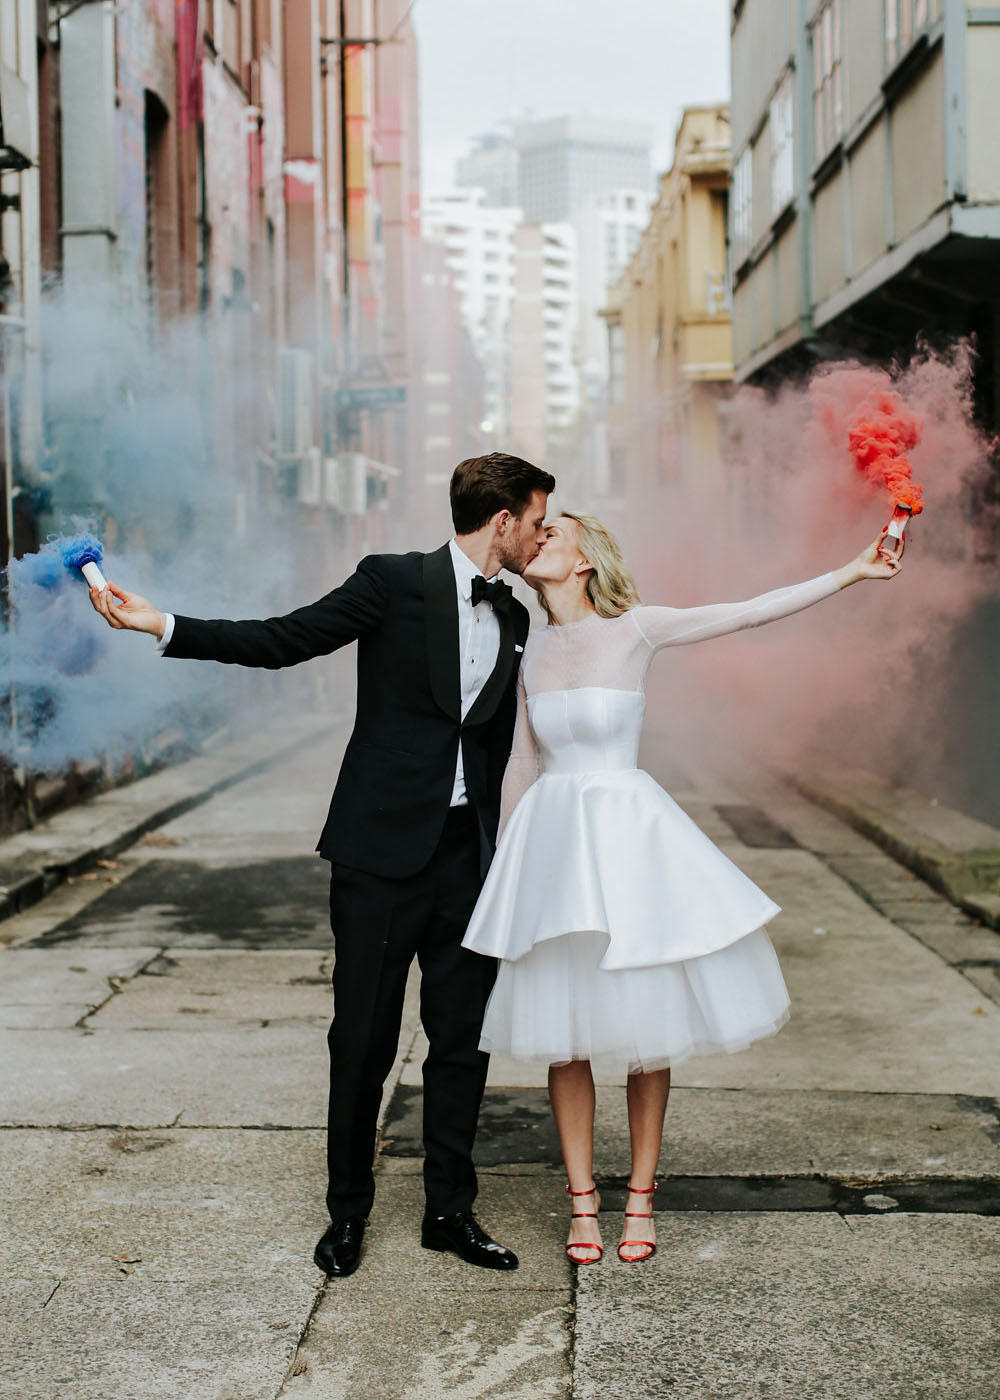 Urban chic wedding street scene with flares